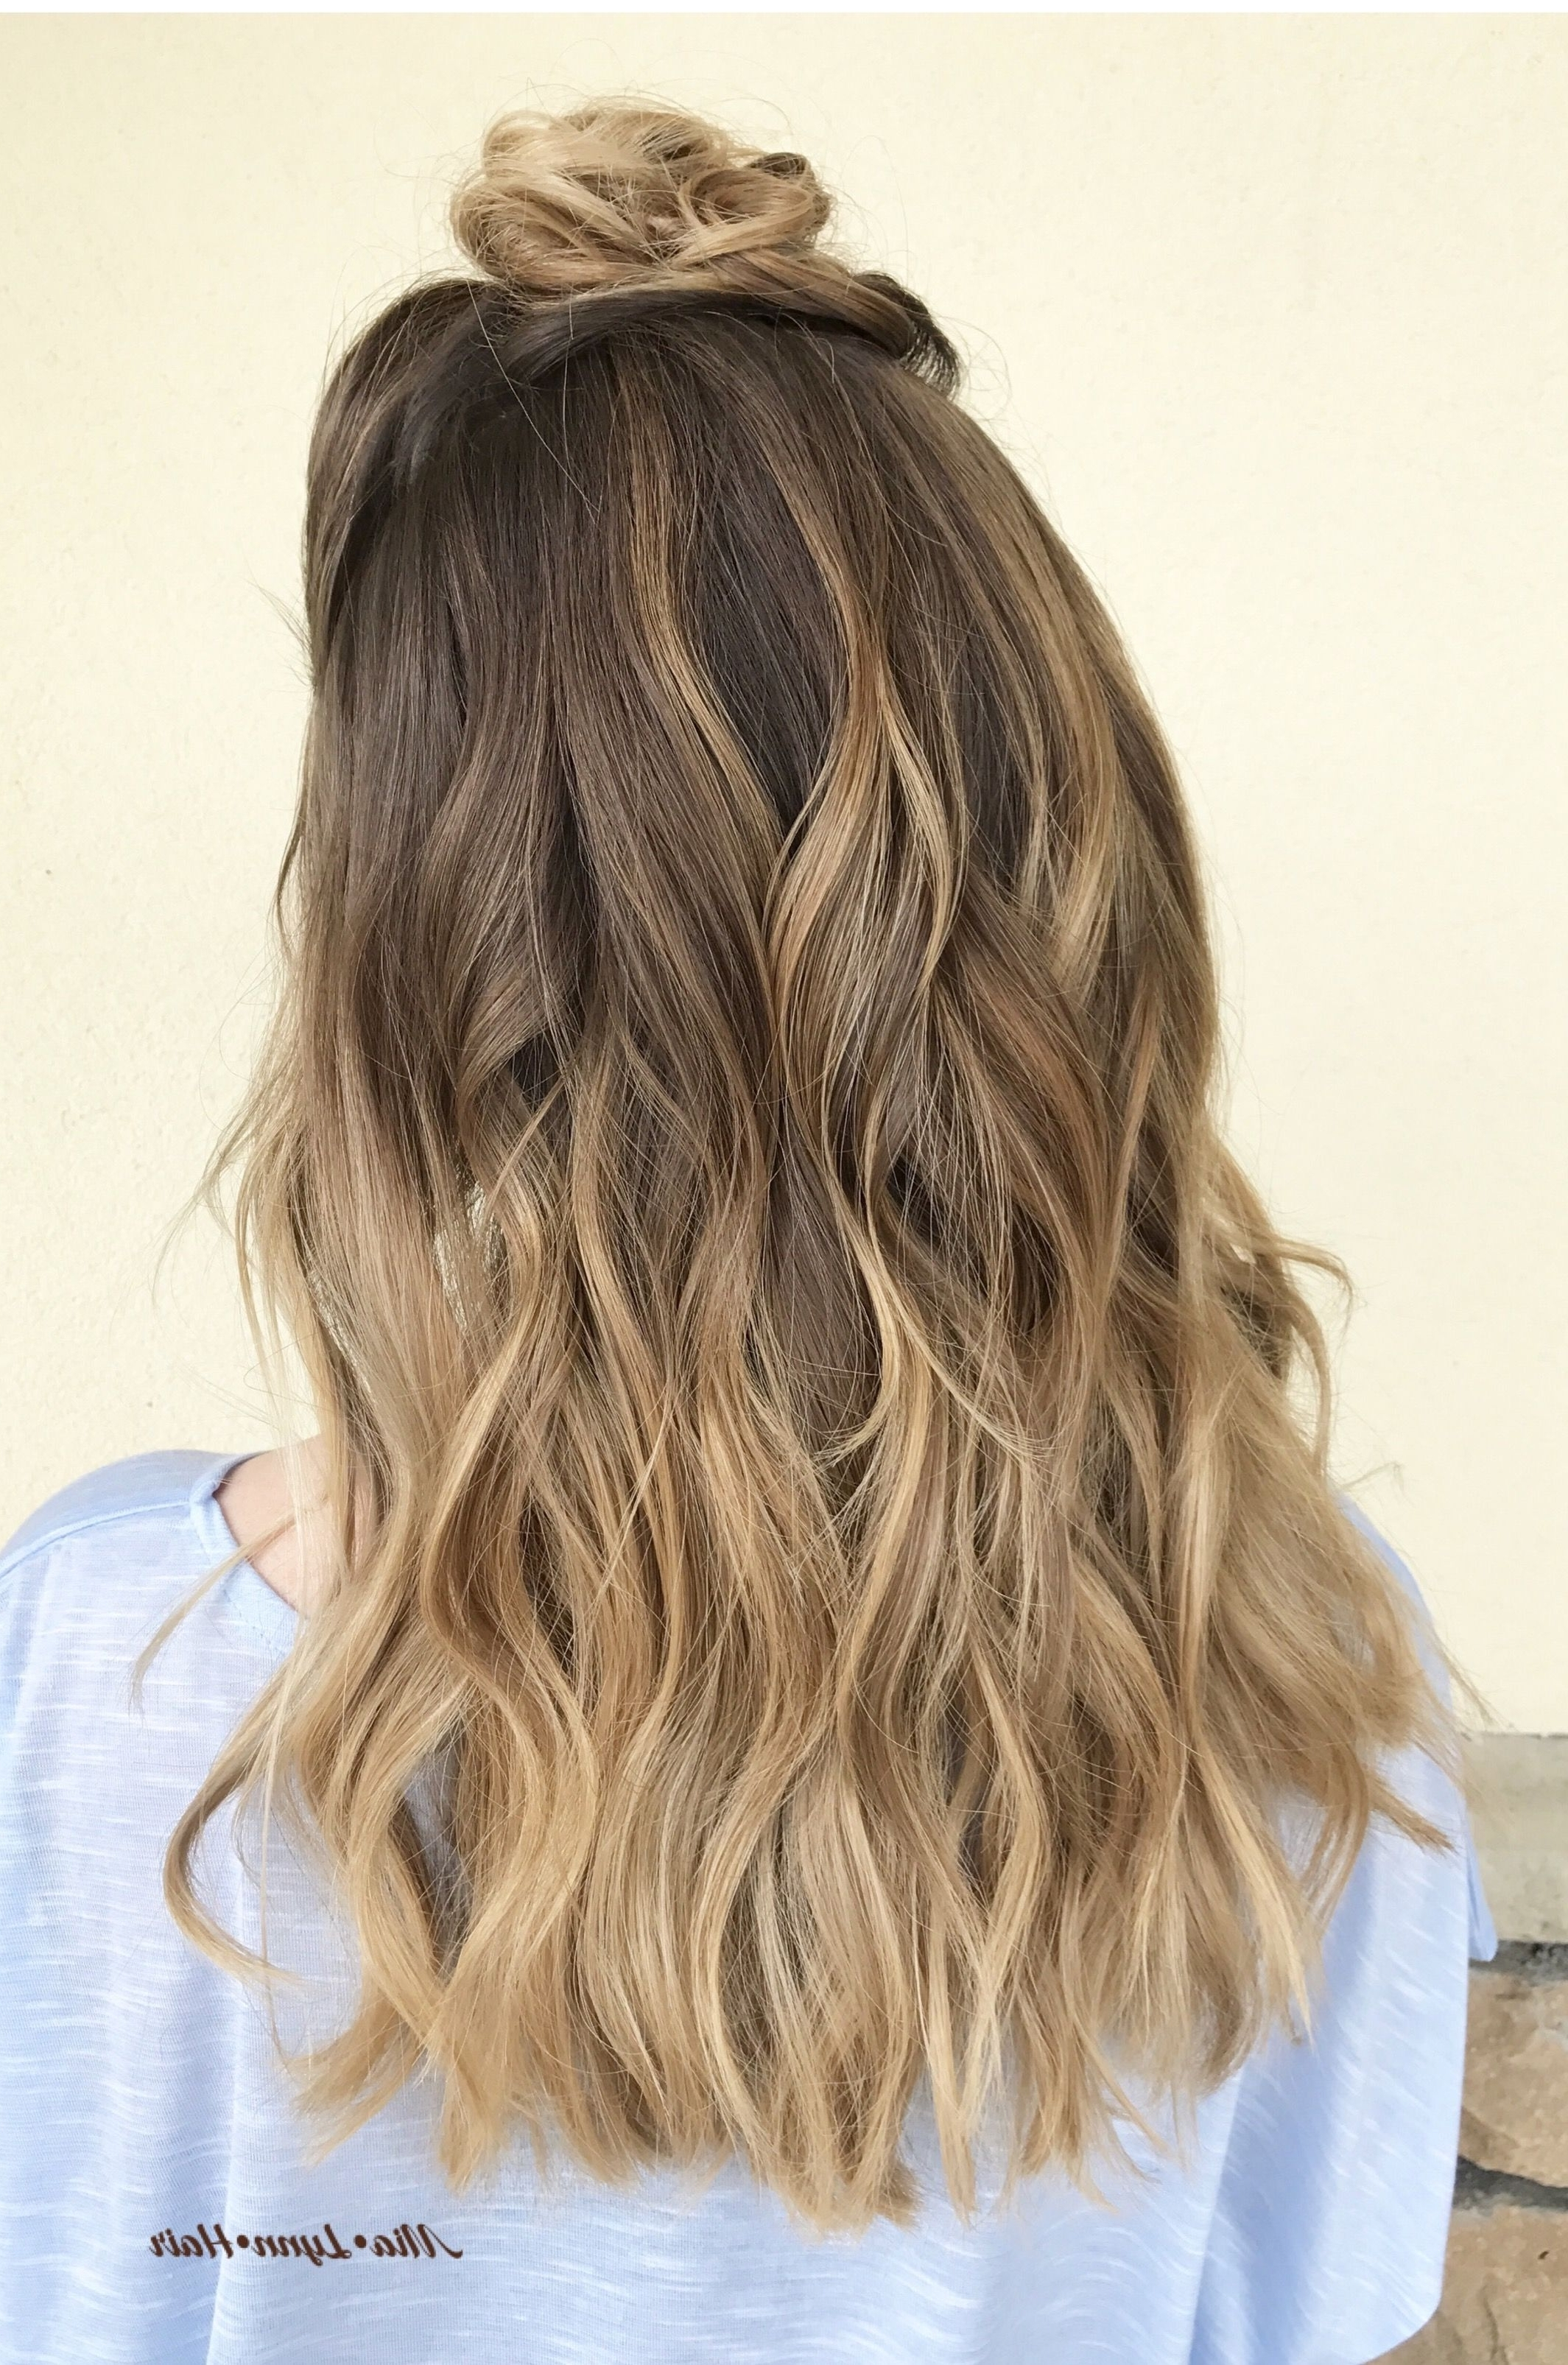 Latest Bronde Beach Waves Blonde Hairstyles With Regard To Balayage, Balayage Highlights, Painted Highlights, Blonde Hair (View 9 of 20)